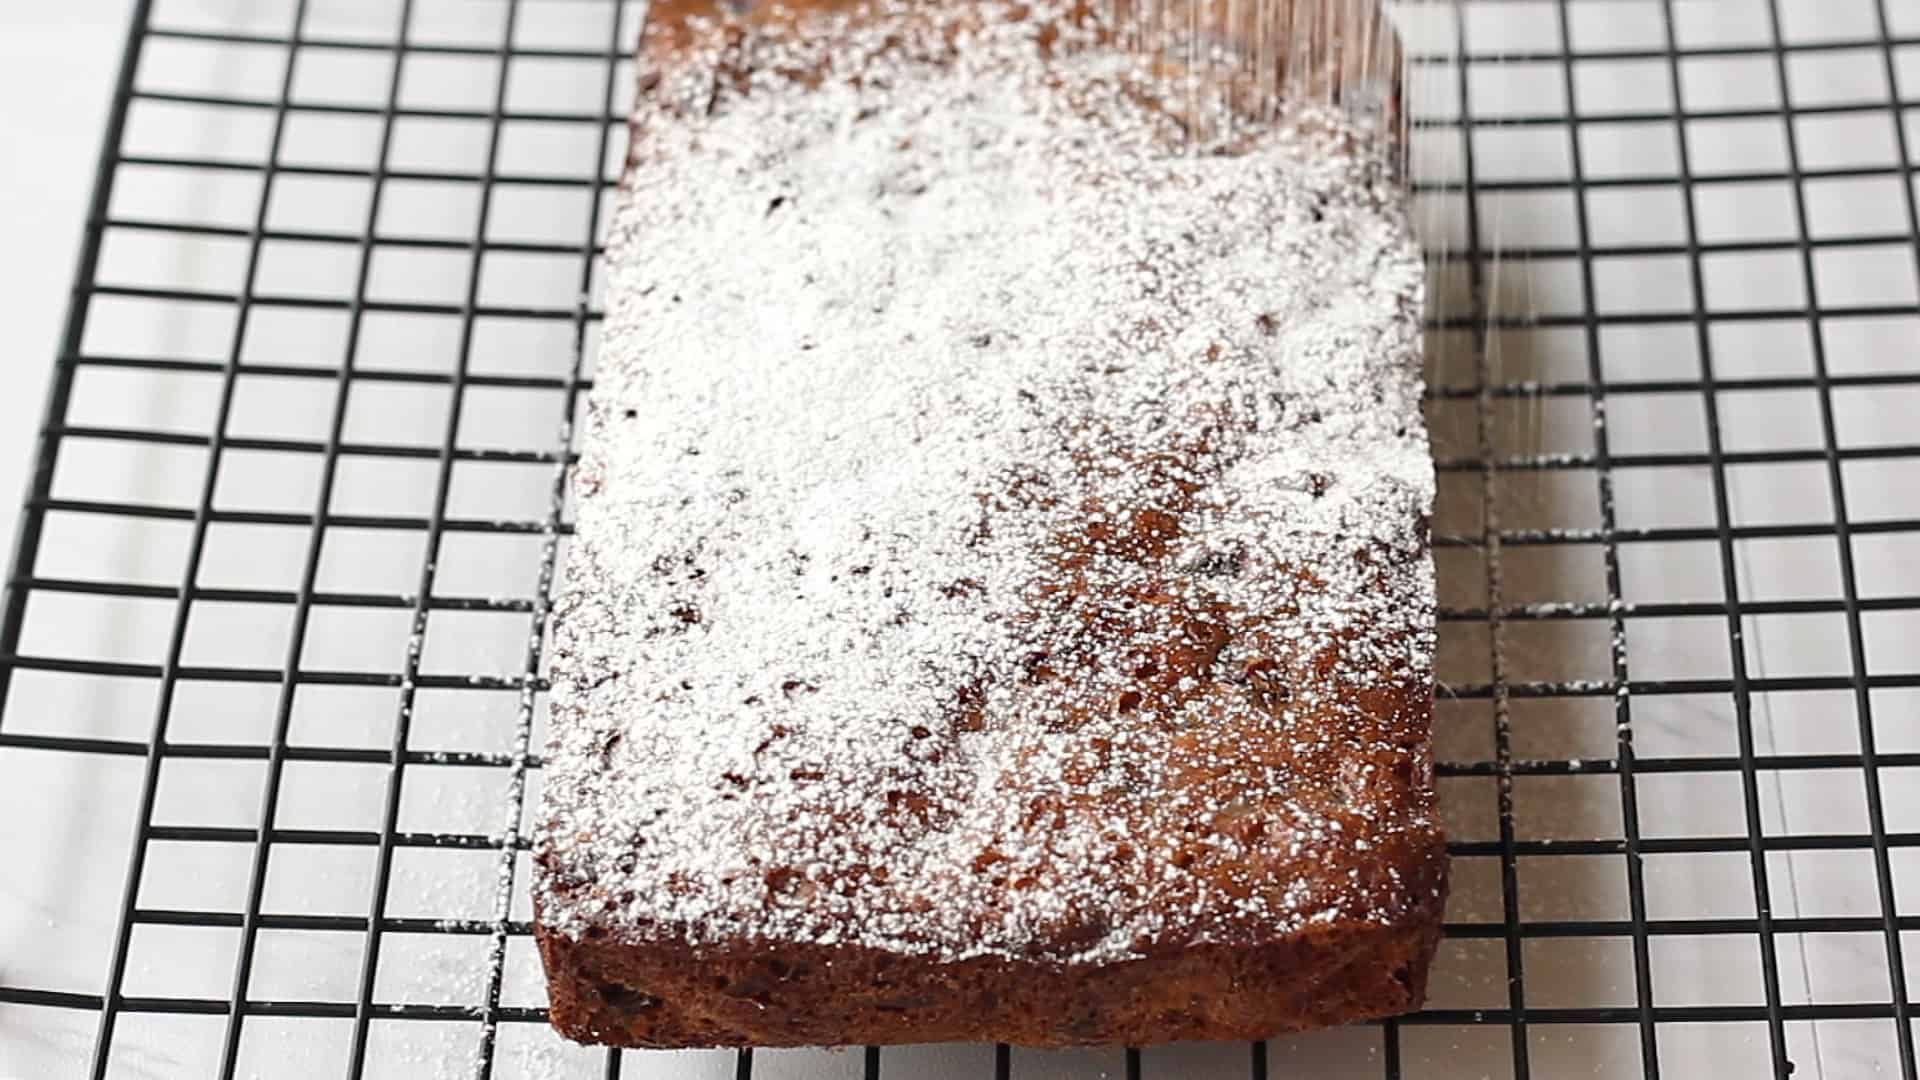 Sprinkling the loaf with powdered sugar